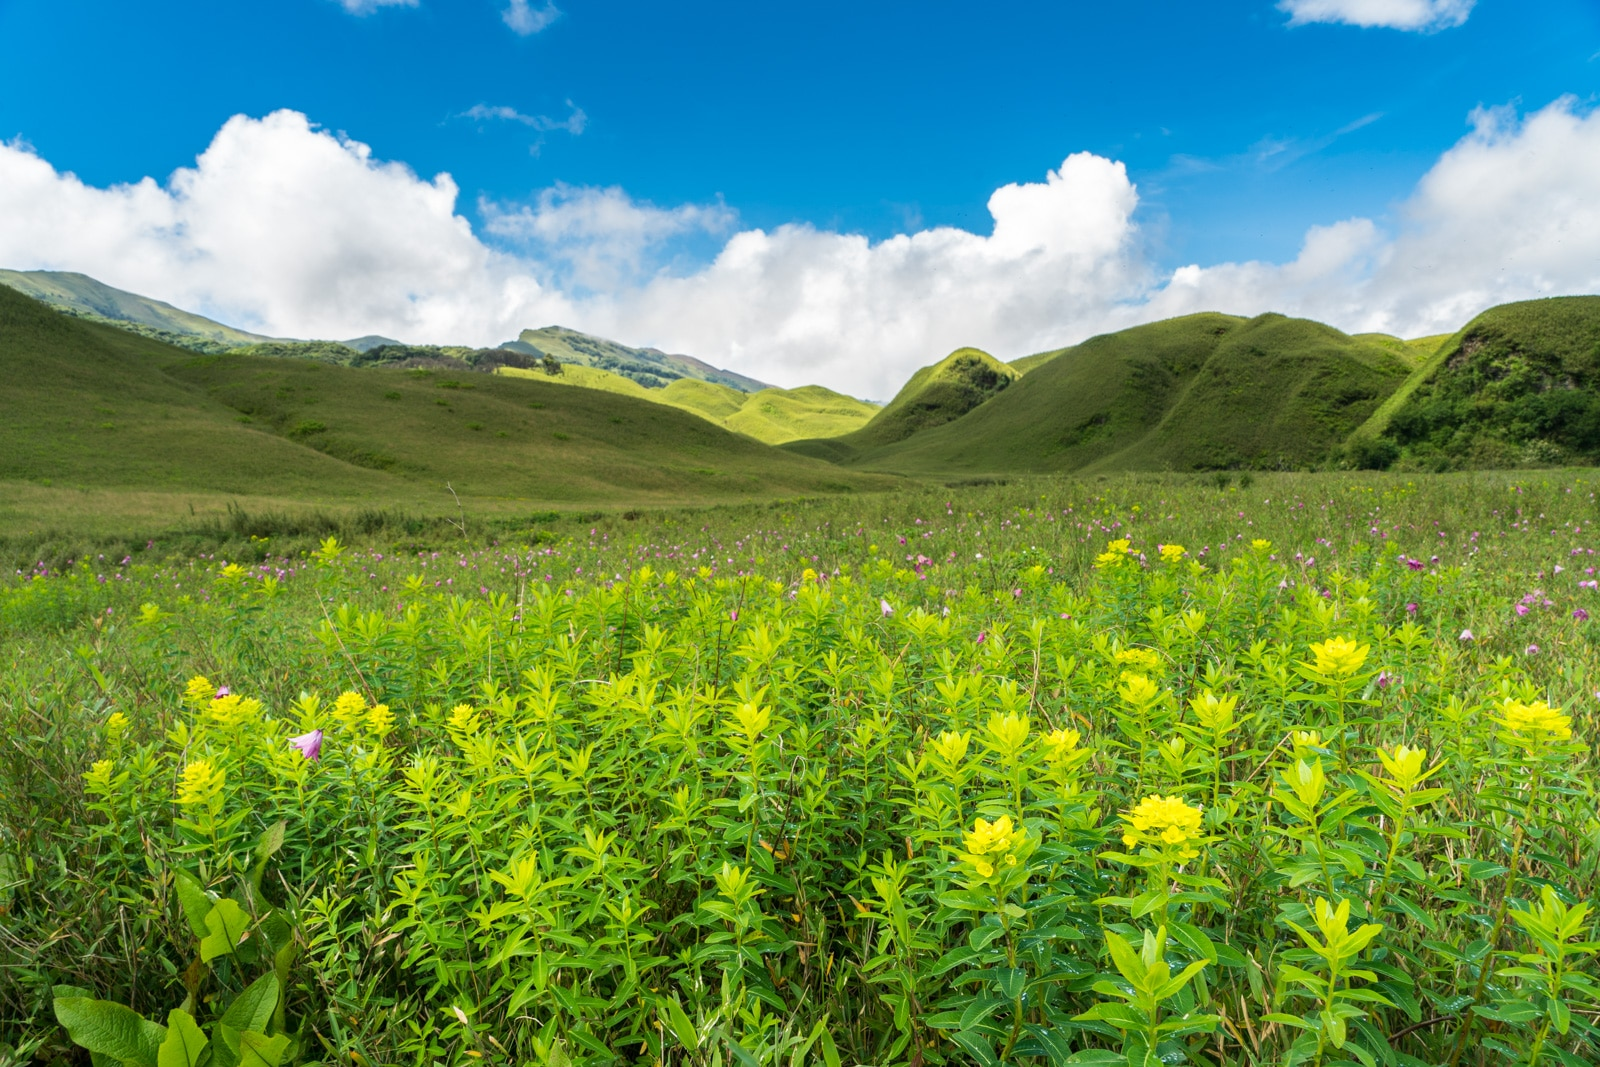 How to get to Dzukou Valley from Nagaland, India - Yellow flowers blooming in Dzukou Valley - Lost With Purpose